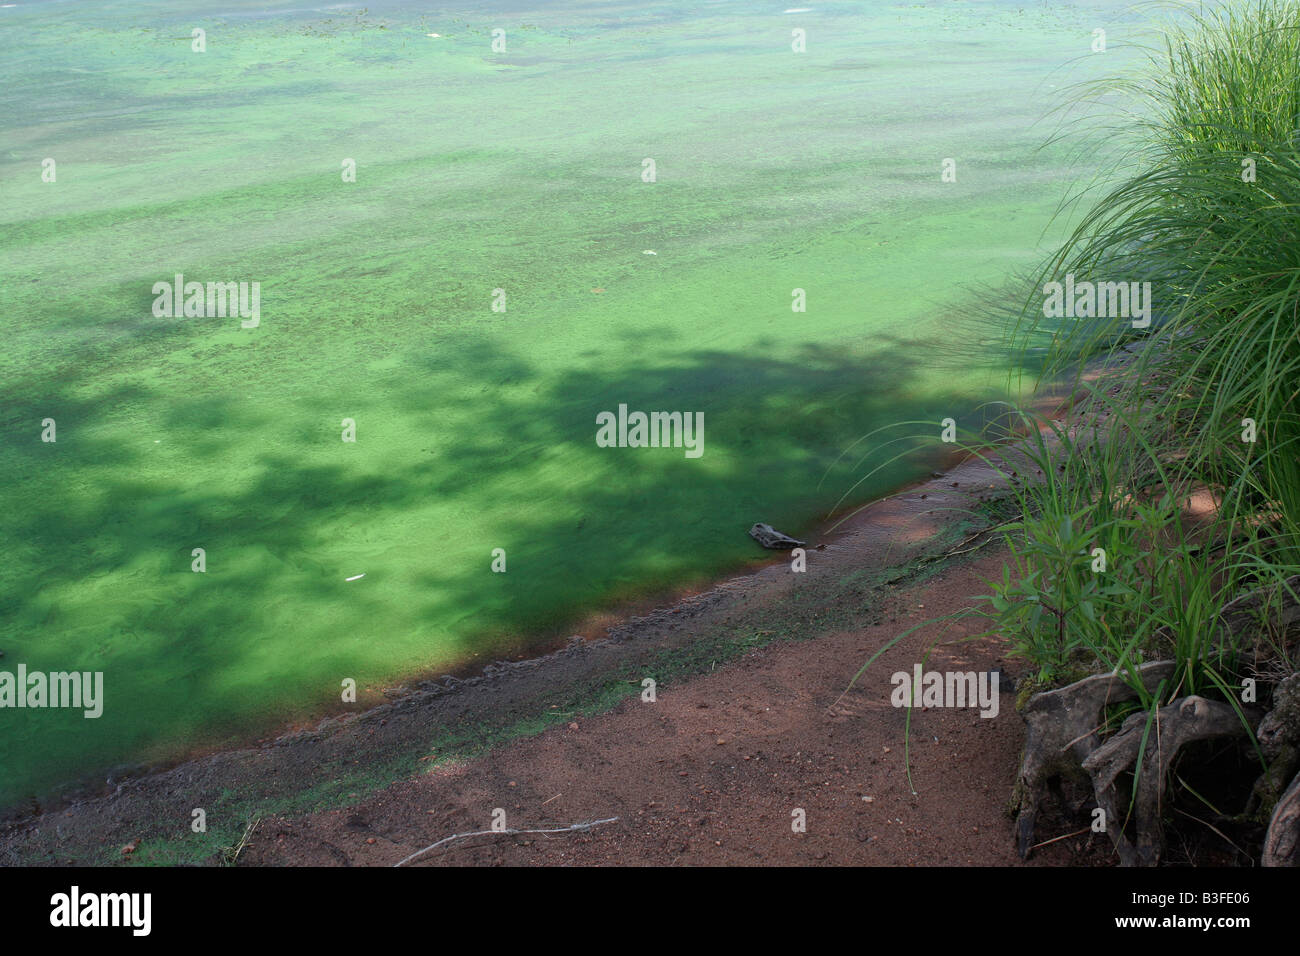 Eutrophication effects on the ecosystems in the Wisconsin river - Stock Image